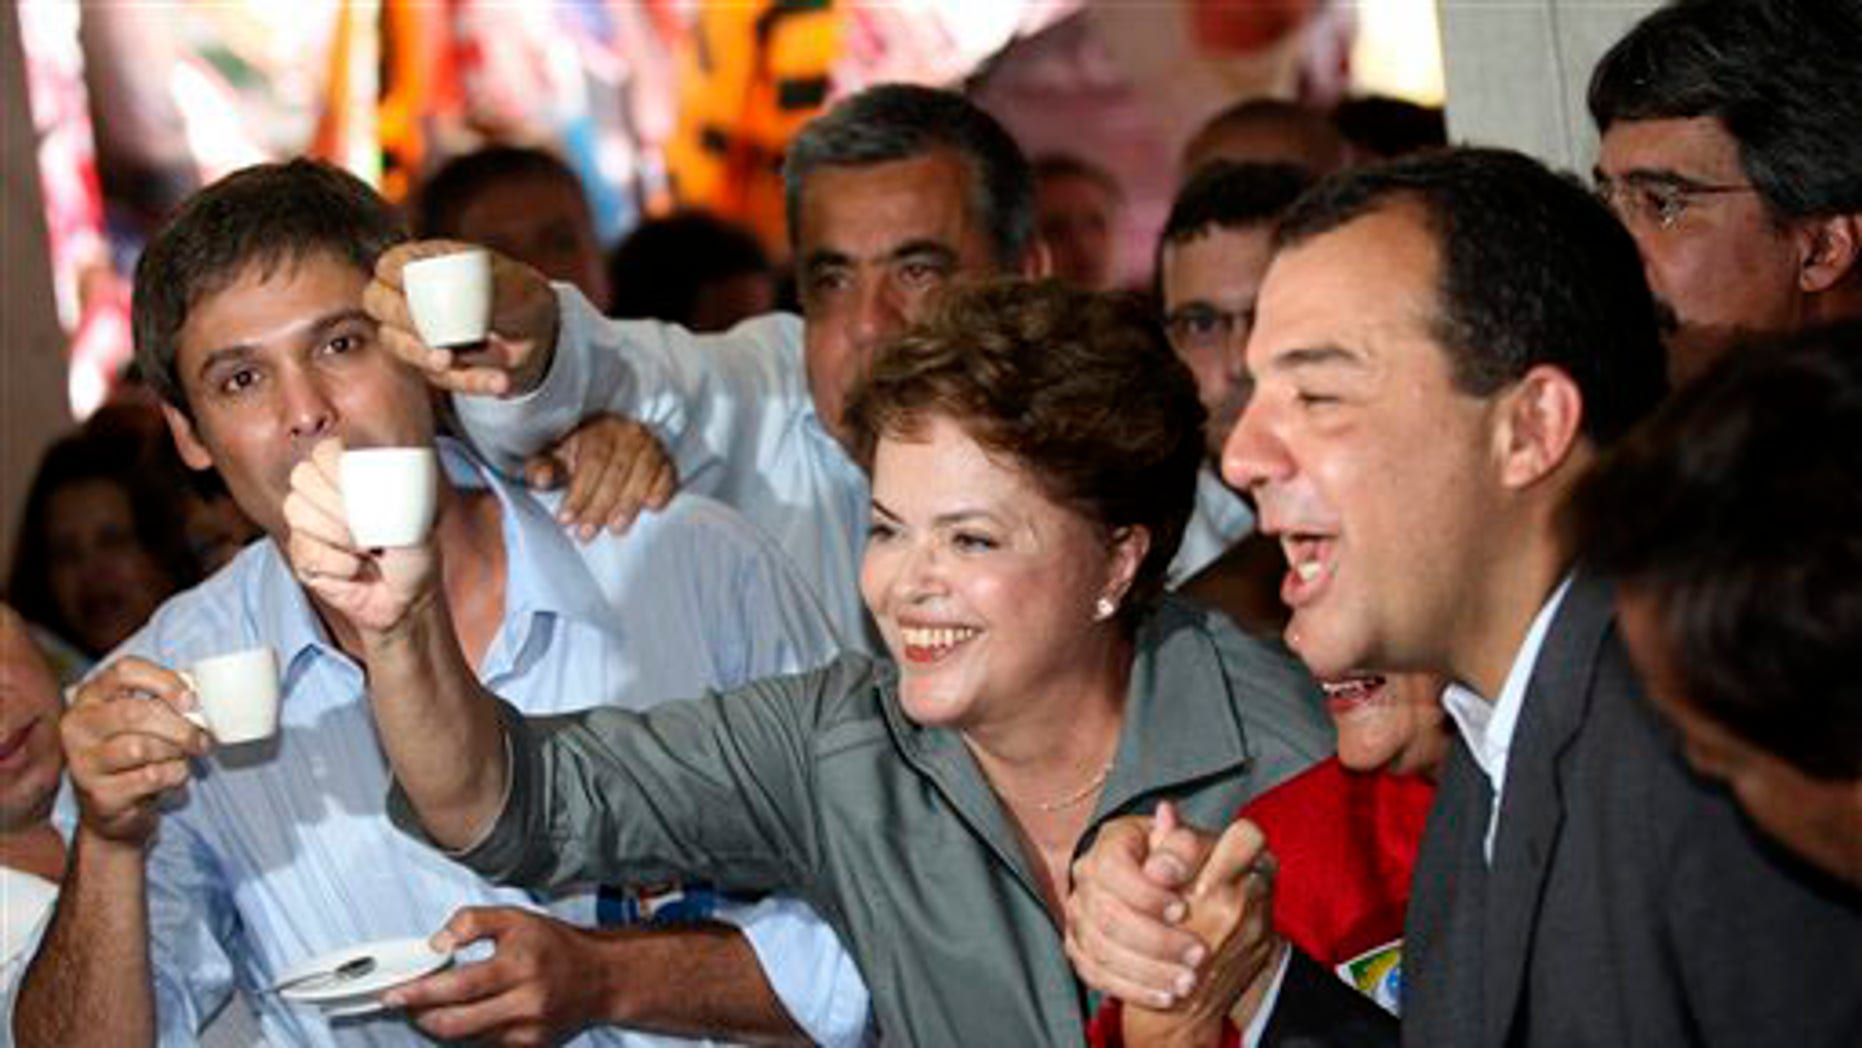 Brazil's Workers party presidential candidate Dilma Rousseff, center, holds up a cup of coffee at a coffee shop during a campaign rally in Rio de Janeiro, Brazil, Monday, Sept. 20, 2010.